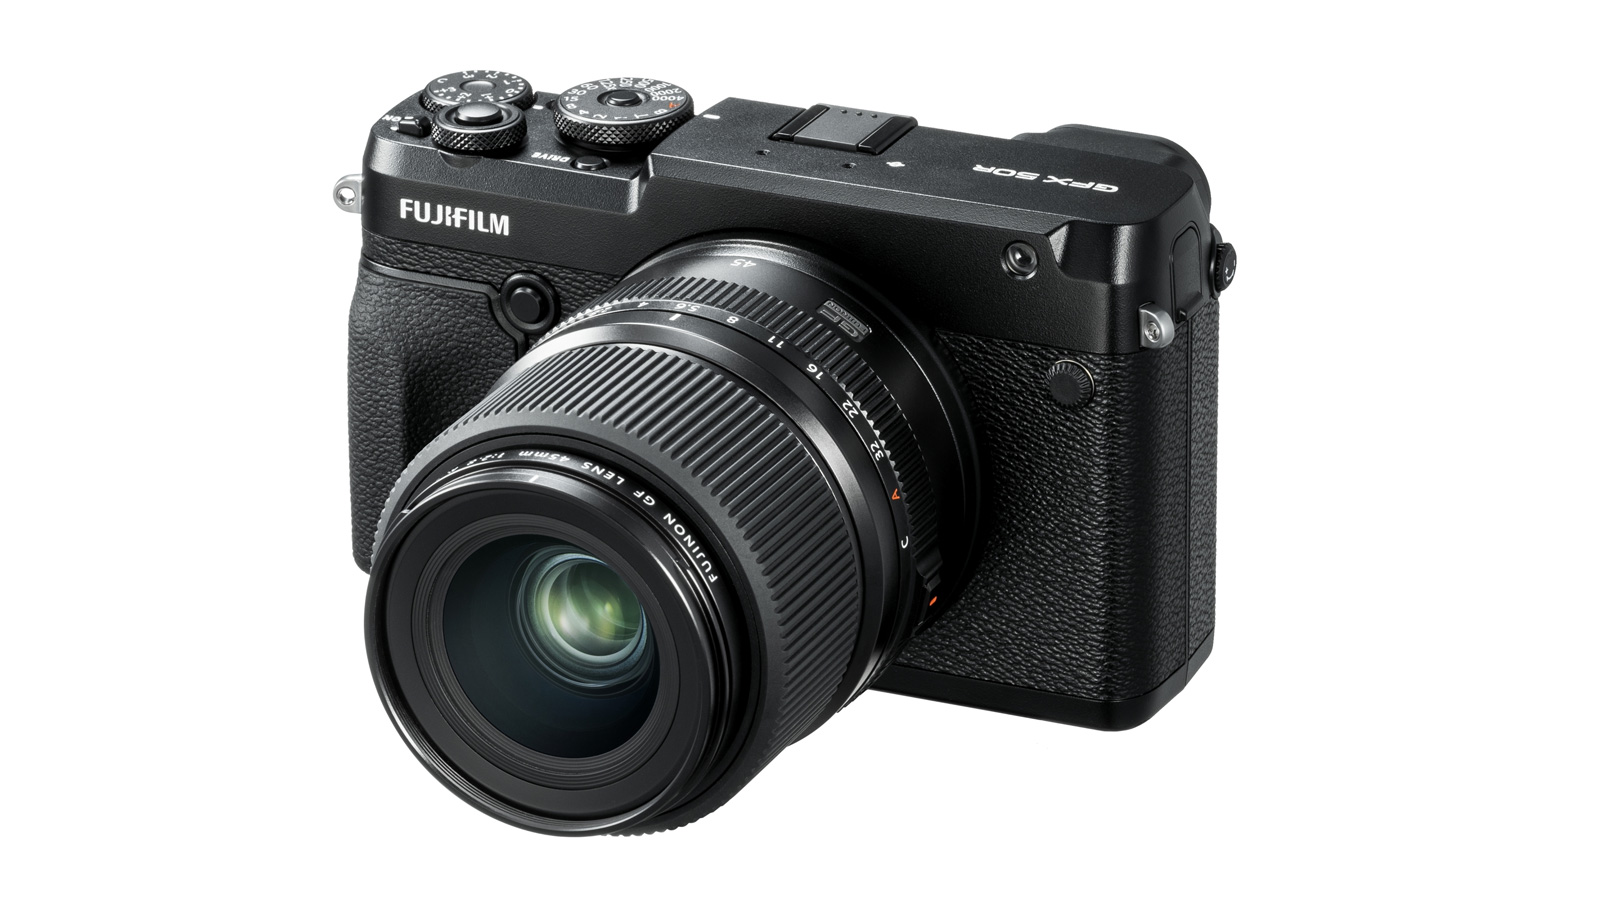 Fujifilm Introduces the GFX 50R Medium Format Camera